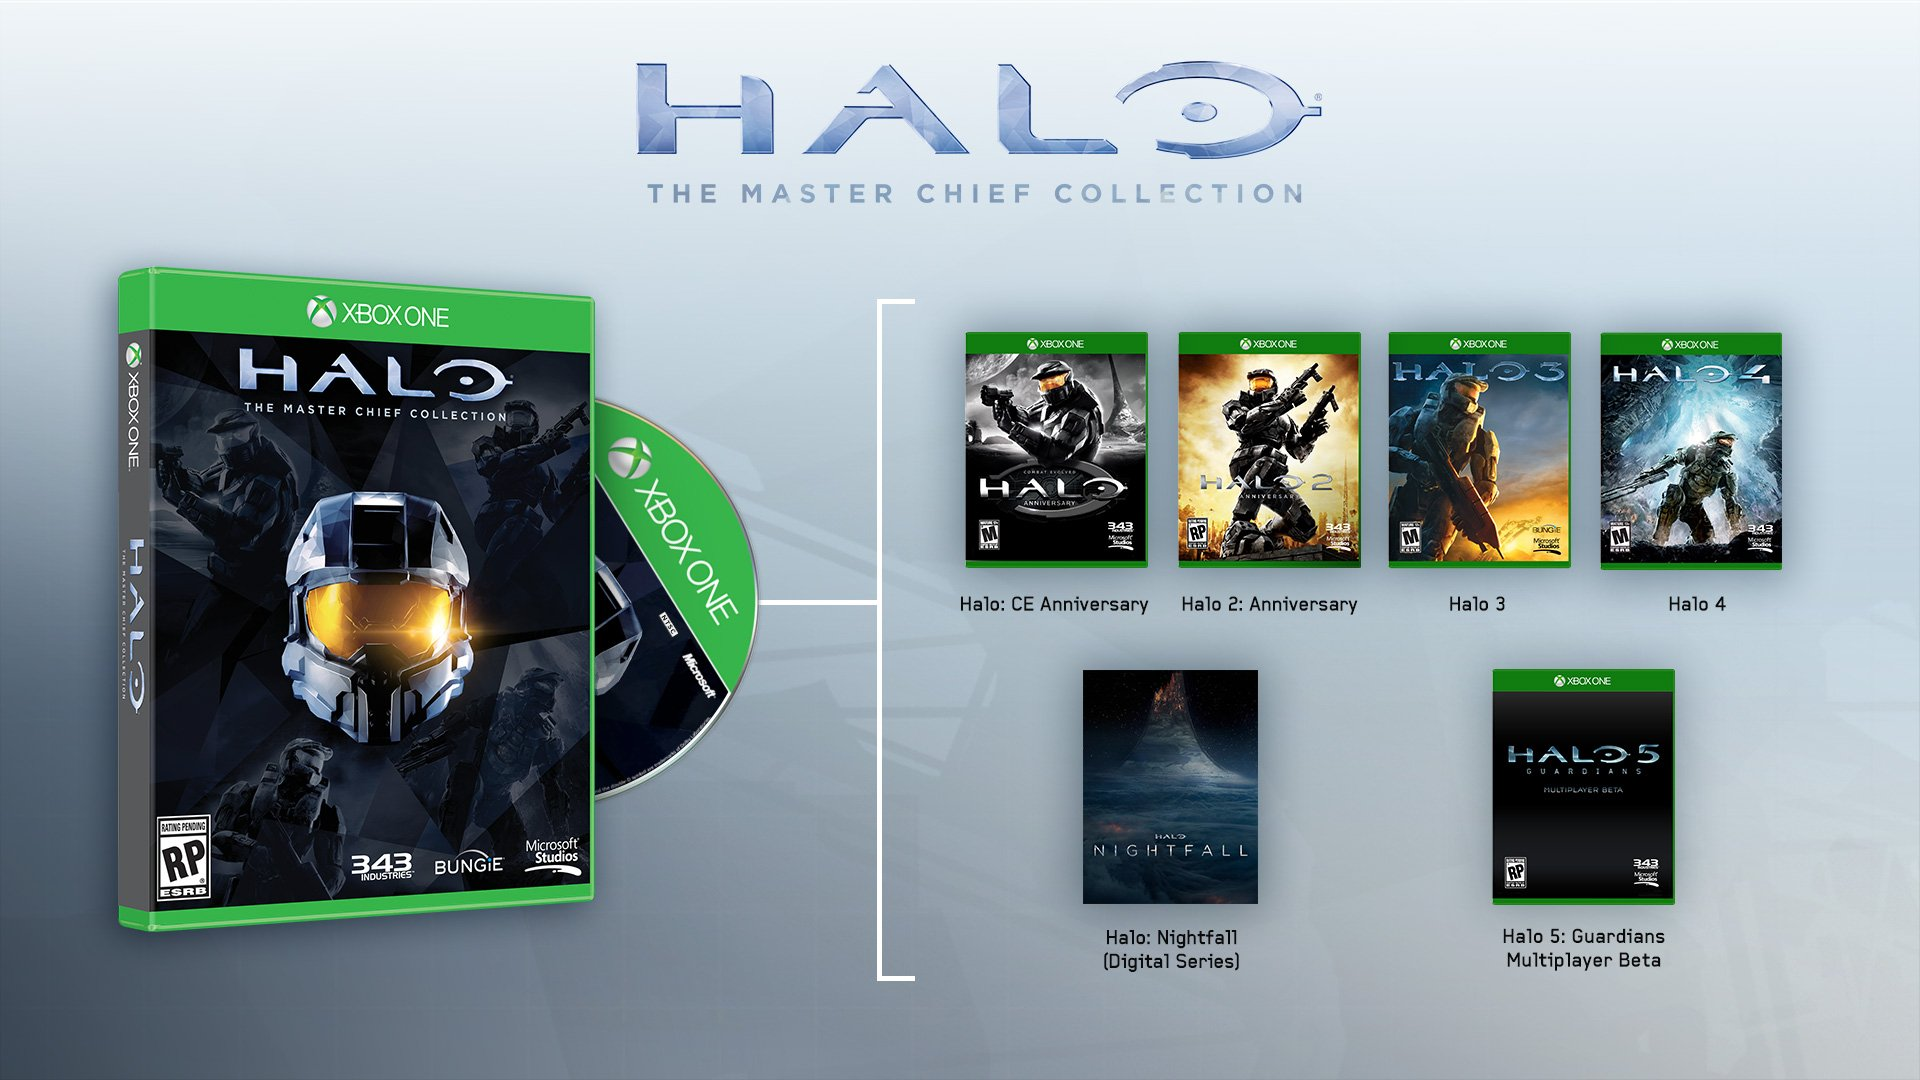 Halo the master chief collection arrive lightningamer - La xbox one lit elle les jeux xbox 360 ...